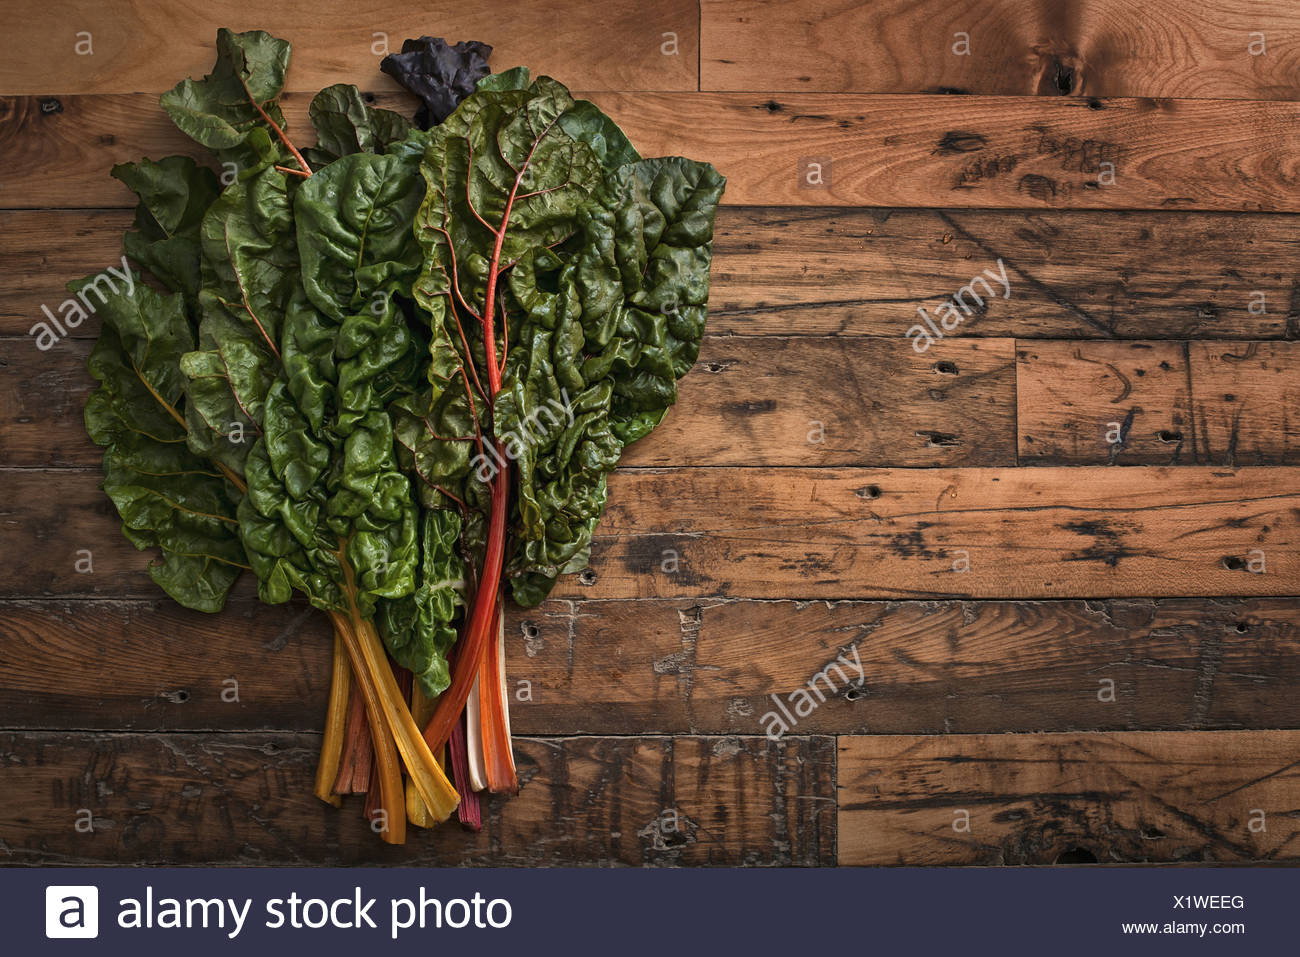 group of red and orange chard leaves with bright coloured stems Organic vegetables freshly picked and placed on a wooden board - Stock Image